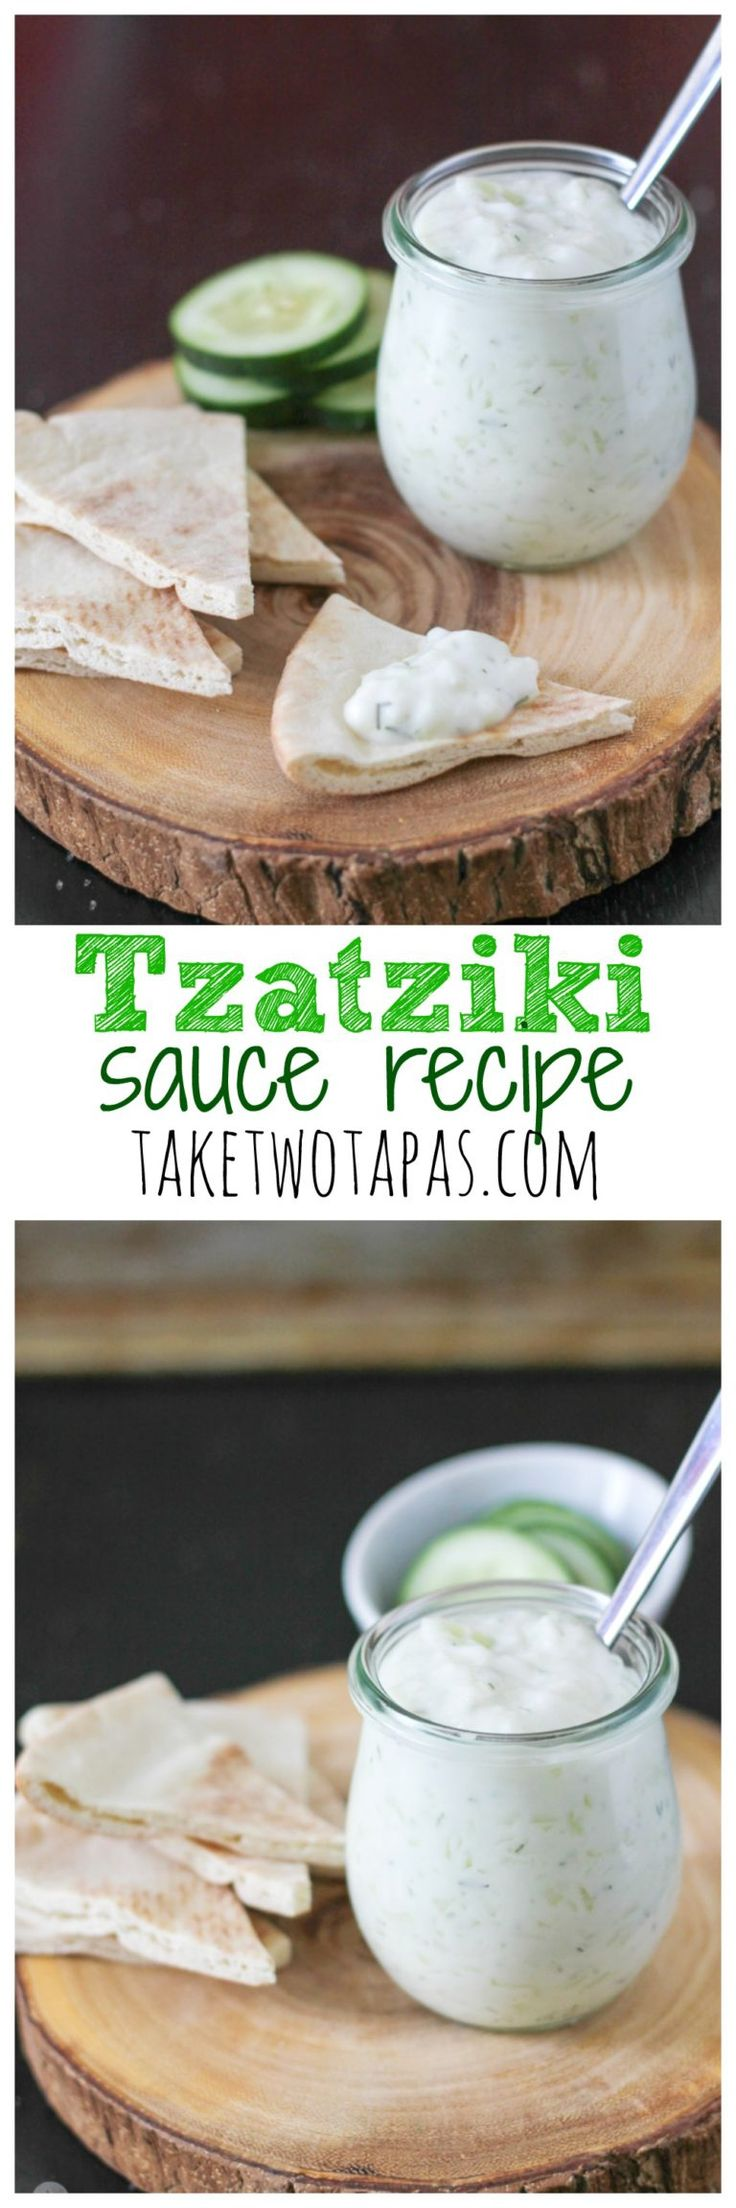 Tzatziki cucumber yogurt sauce is the perfect compliment to chicken, lamb, and even beef. This tangy, dip is heightened with the addition of lemon juice and fresh dill. Tzatziki Sauce Recipe | Take Two Tapas